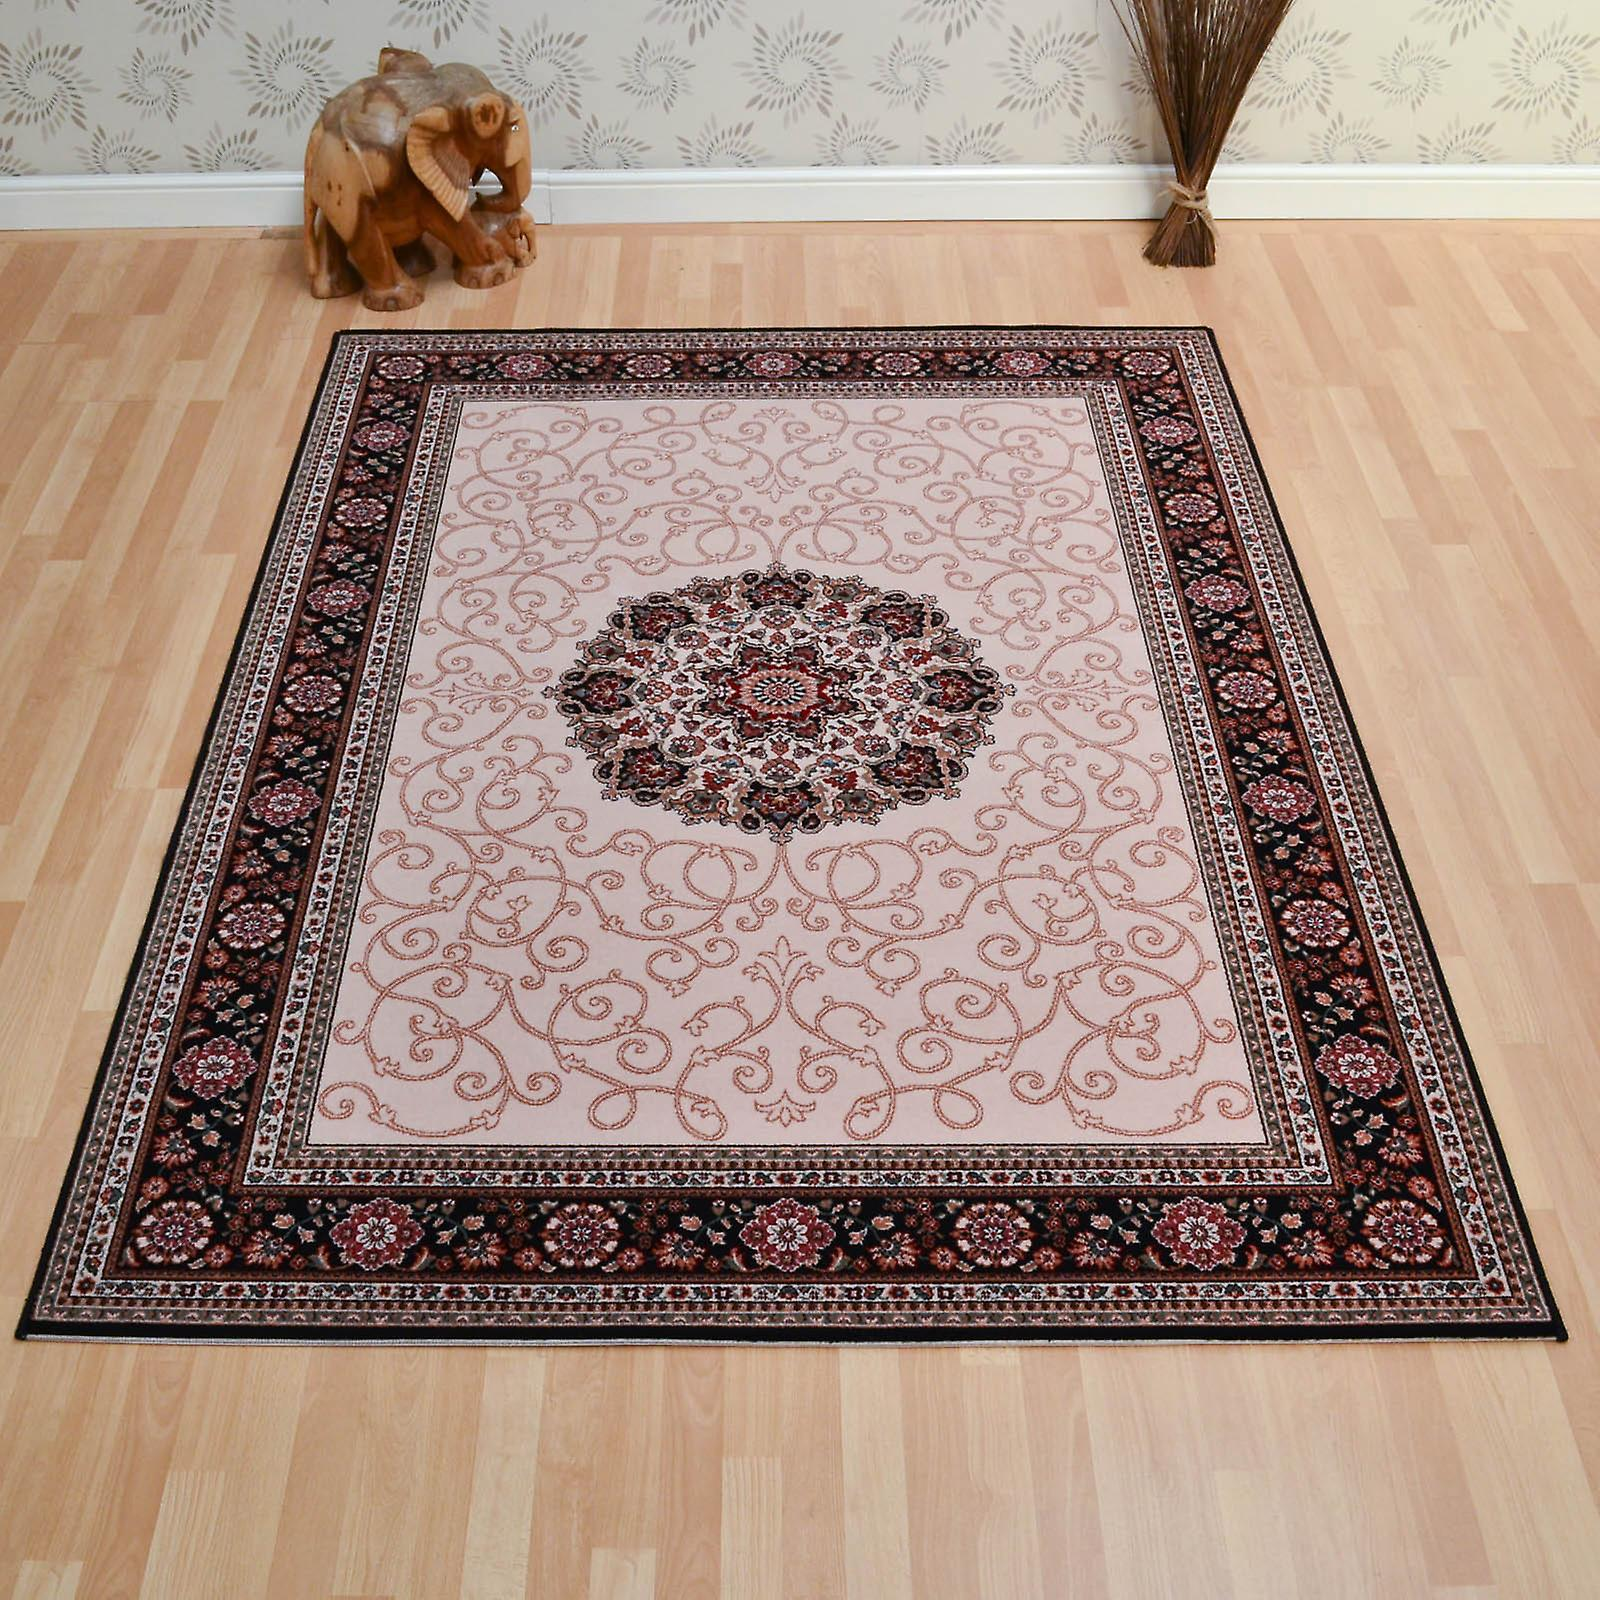 d591bb0751 Lano Imperial Rugs 1954 687 In Beige And Navy | Fruugo